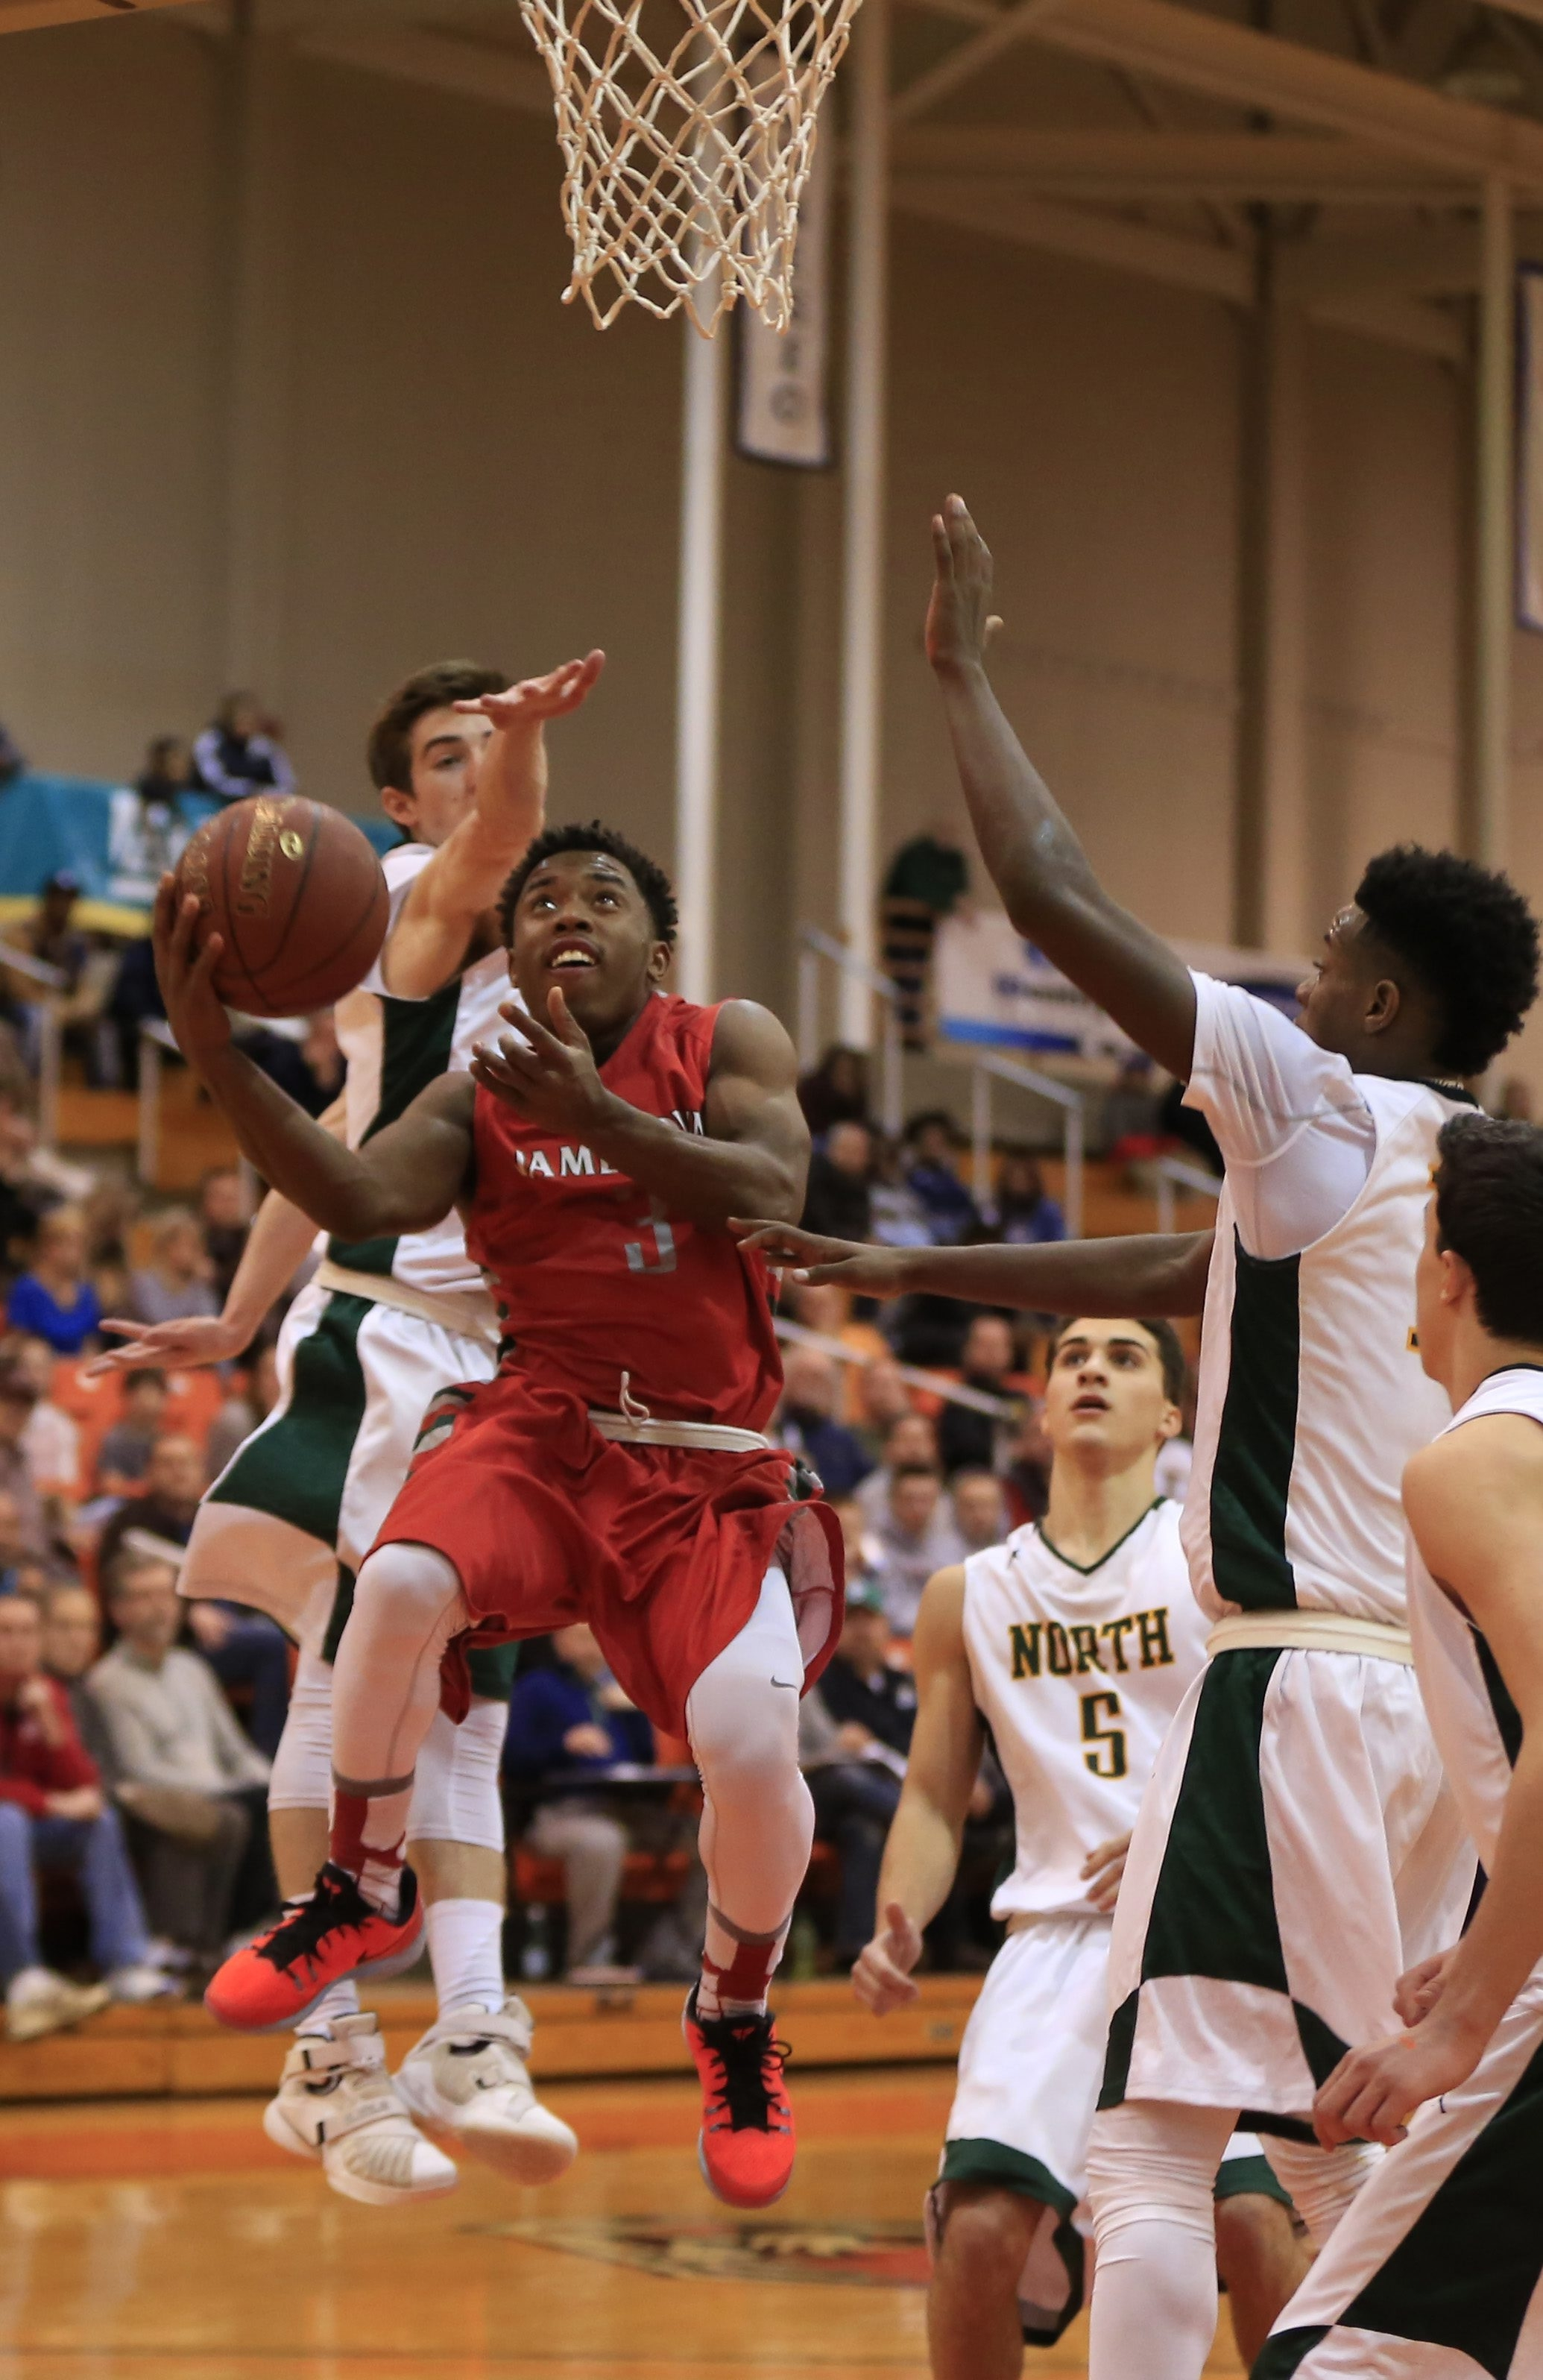 Jamestown's Zacc Kinsey drives to the basket against Williamsville North during the Red Raiders' 45-44 victory Tuesday.